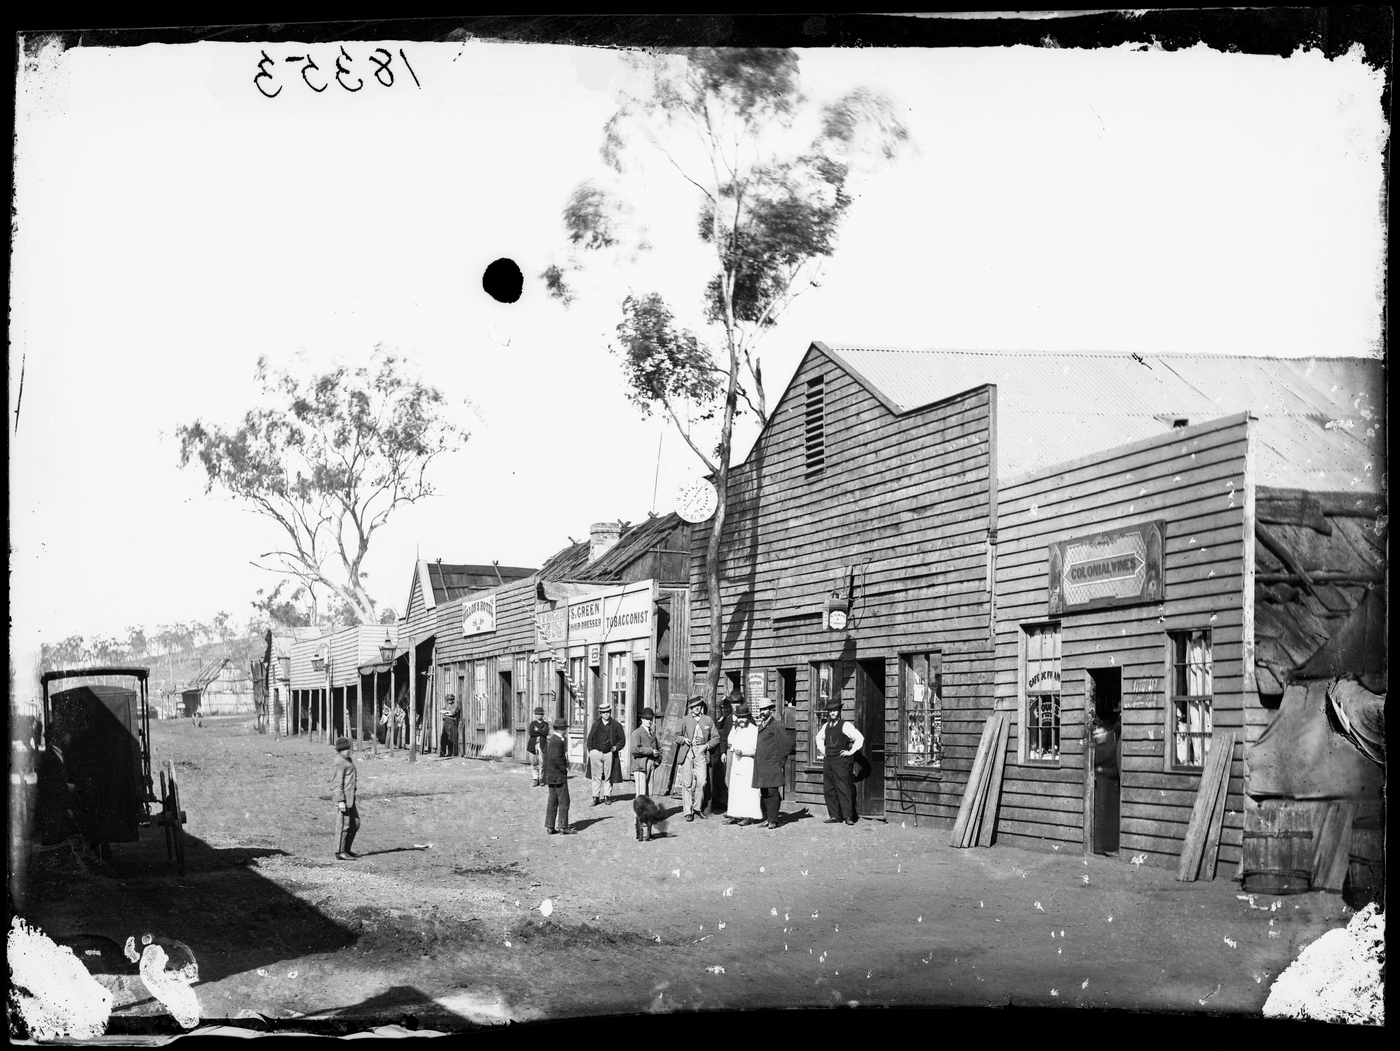 Mayne Street, Gulgong, looking east from Colonial Wines, C. Giugni jeweller, Prince of Wales Theatre, S.Green's Hairdressing Salon and Dillon's Hotel